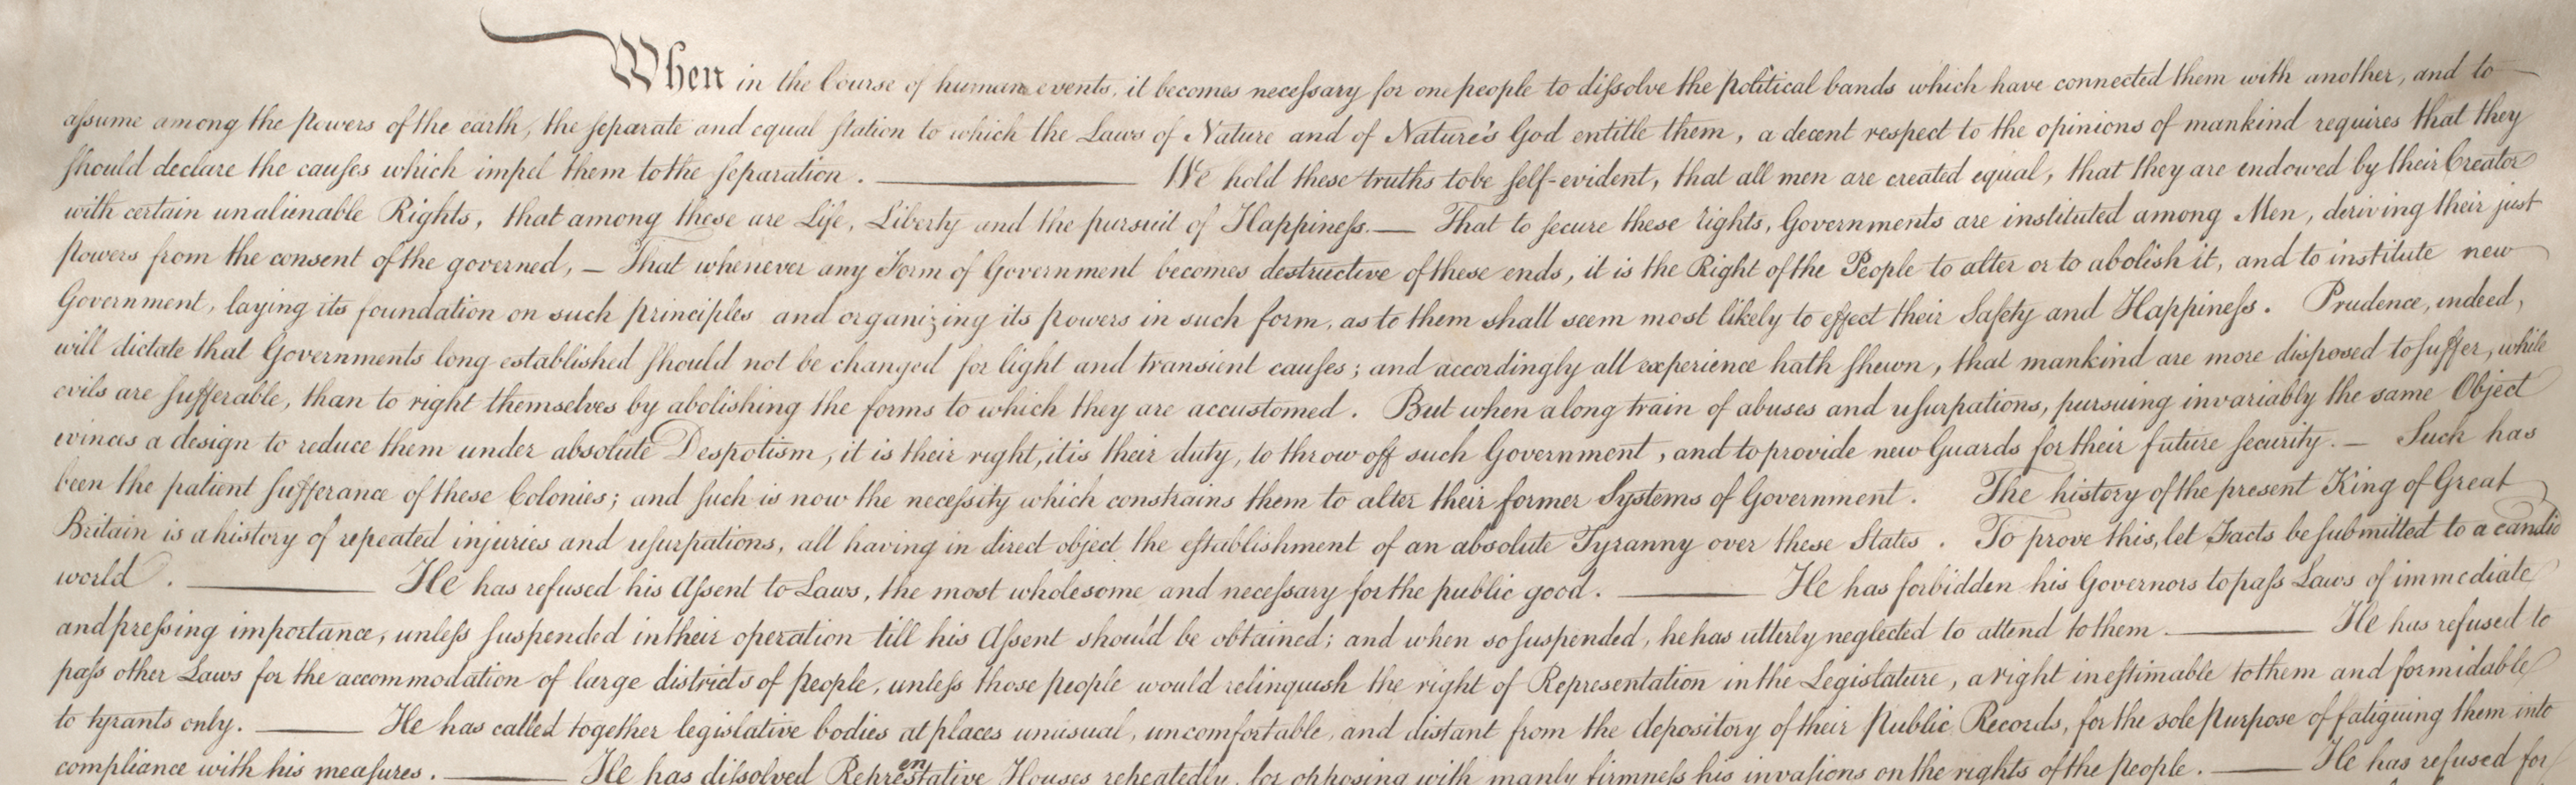 Detail from the Declaration of Independence, July 4, 1776, printed 1823.  (Gilde